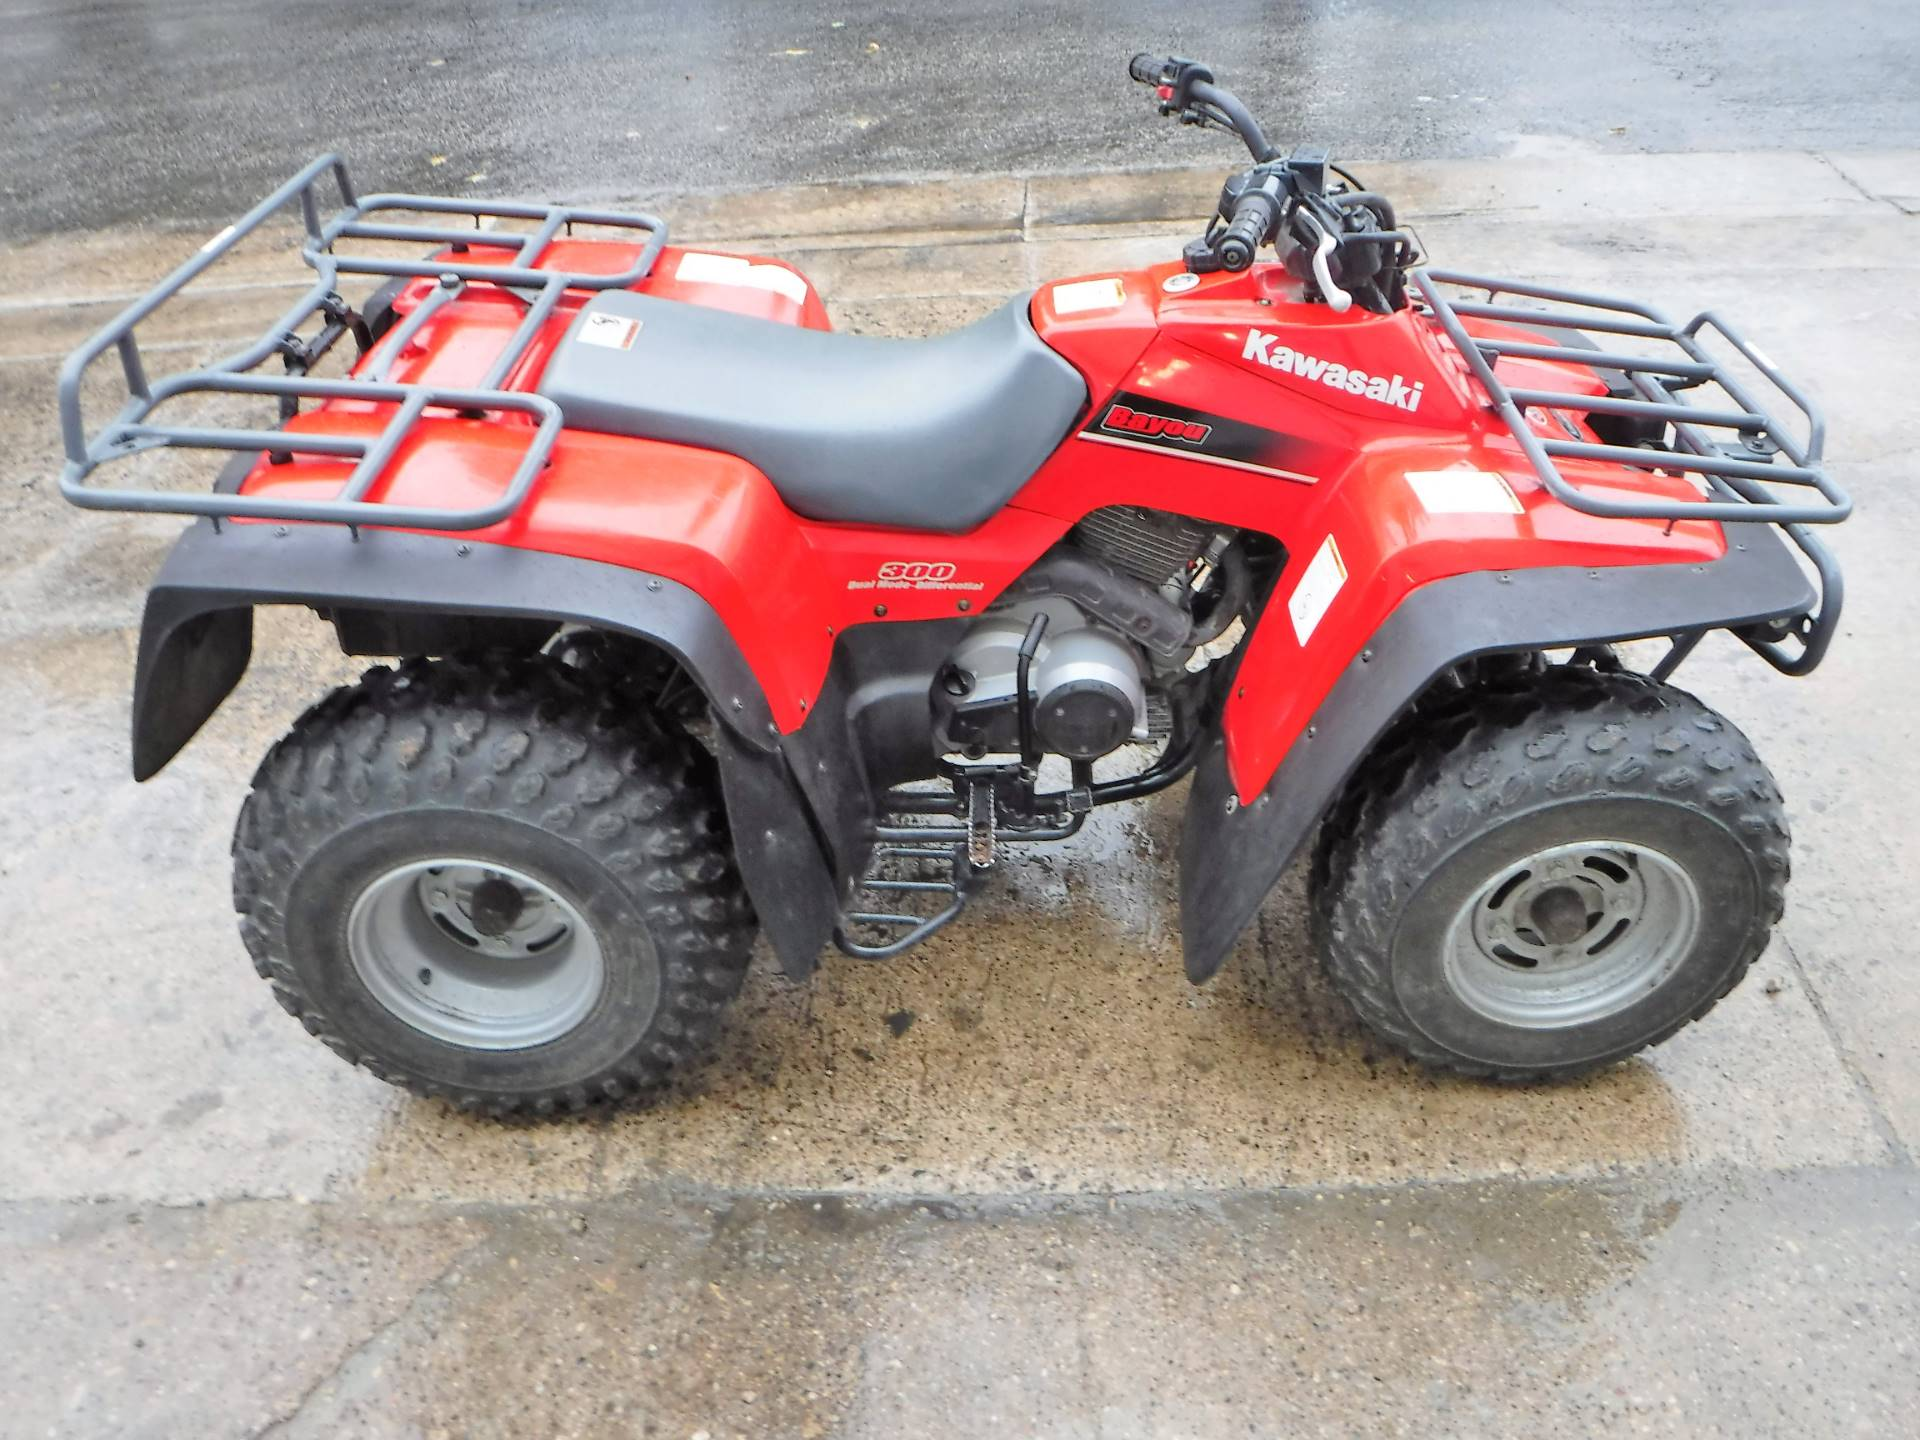 2015 300 Kawasaki Brute Force Wiring Diagram Nice Place To Get 2006 650 Atv Bing Images Ignition